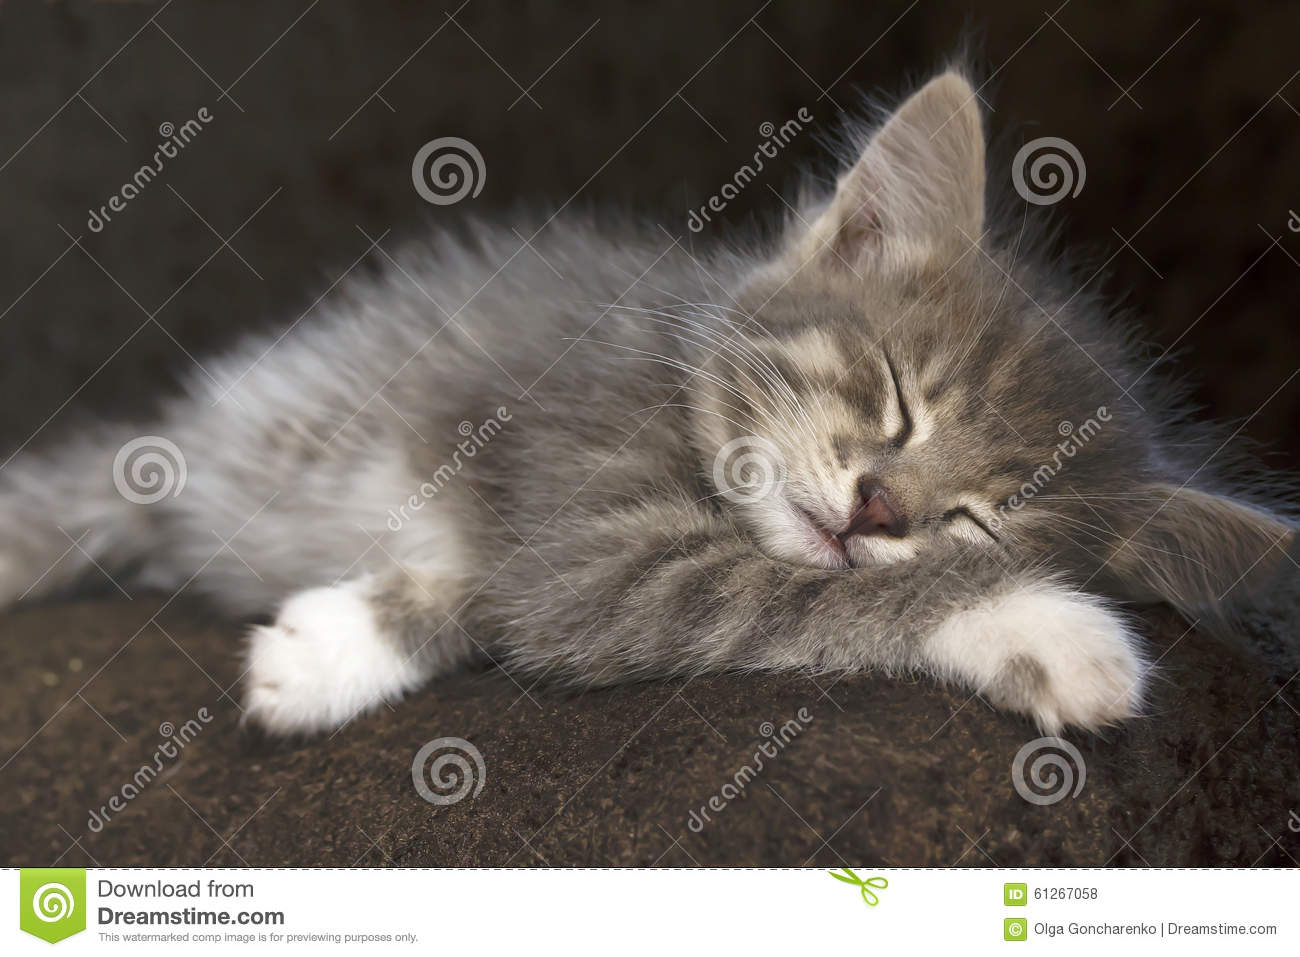 kitten biting nose